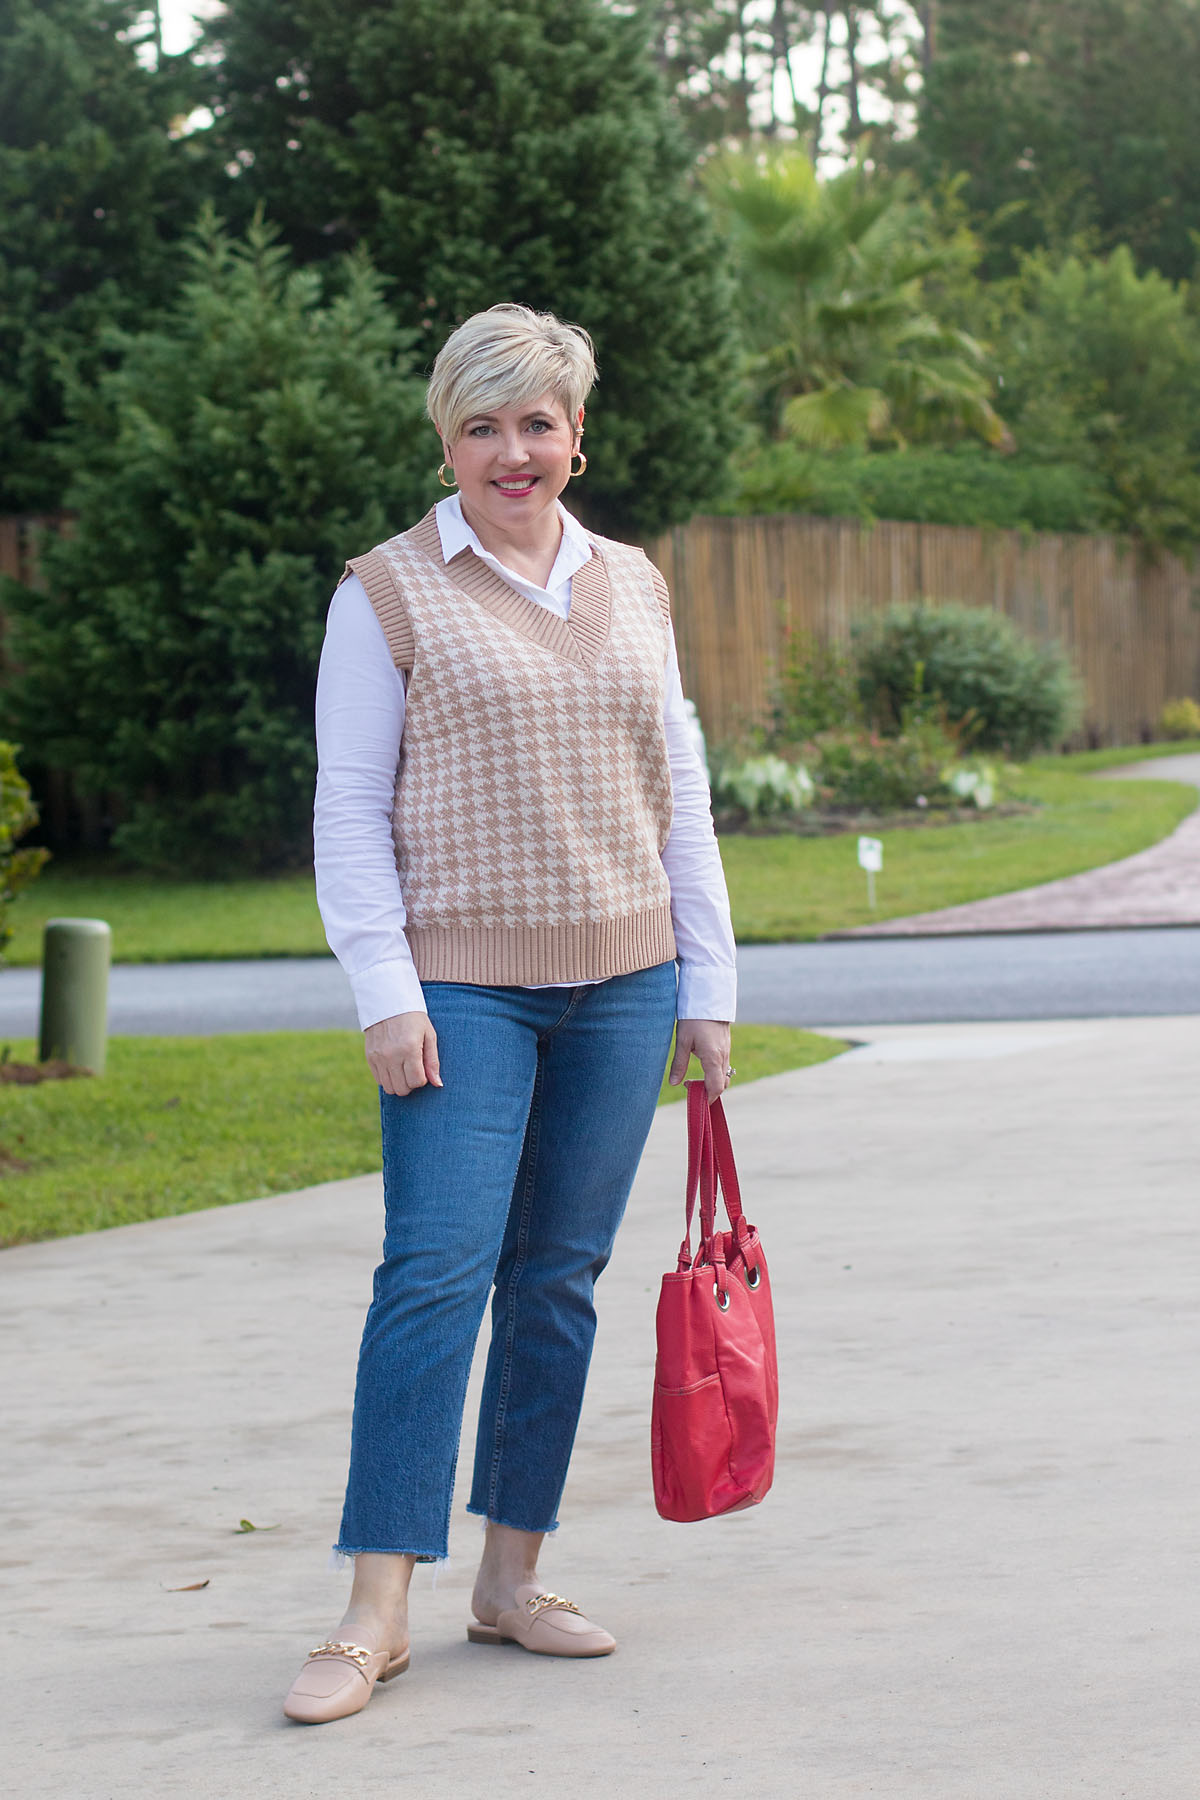 fall fashion trends for women over 40; sweater vest and straight leg jeans outfit